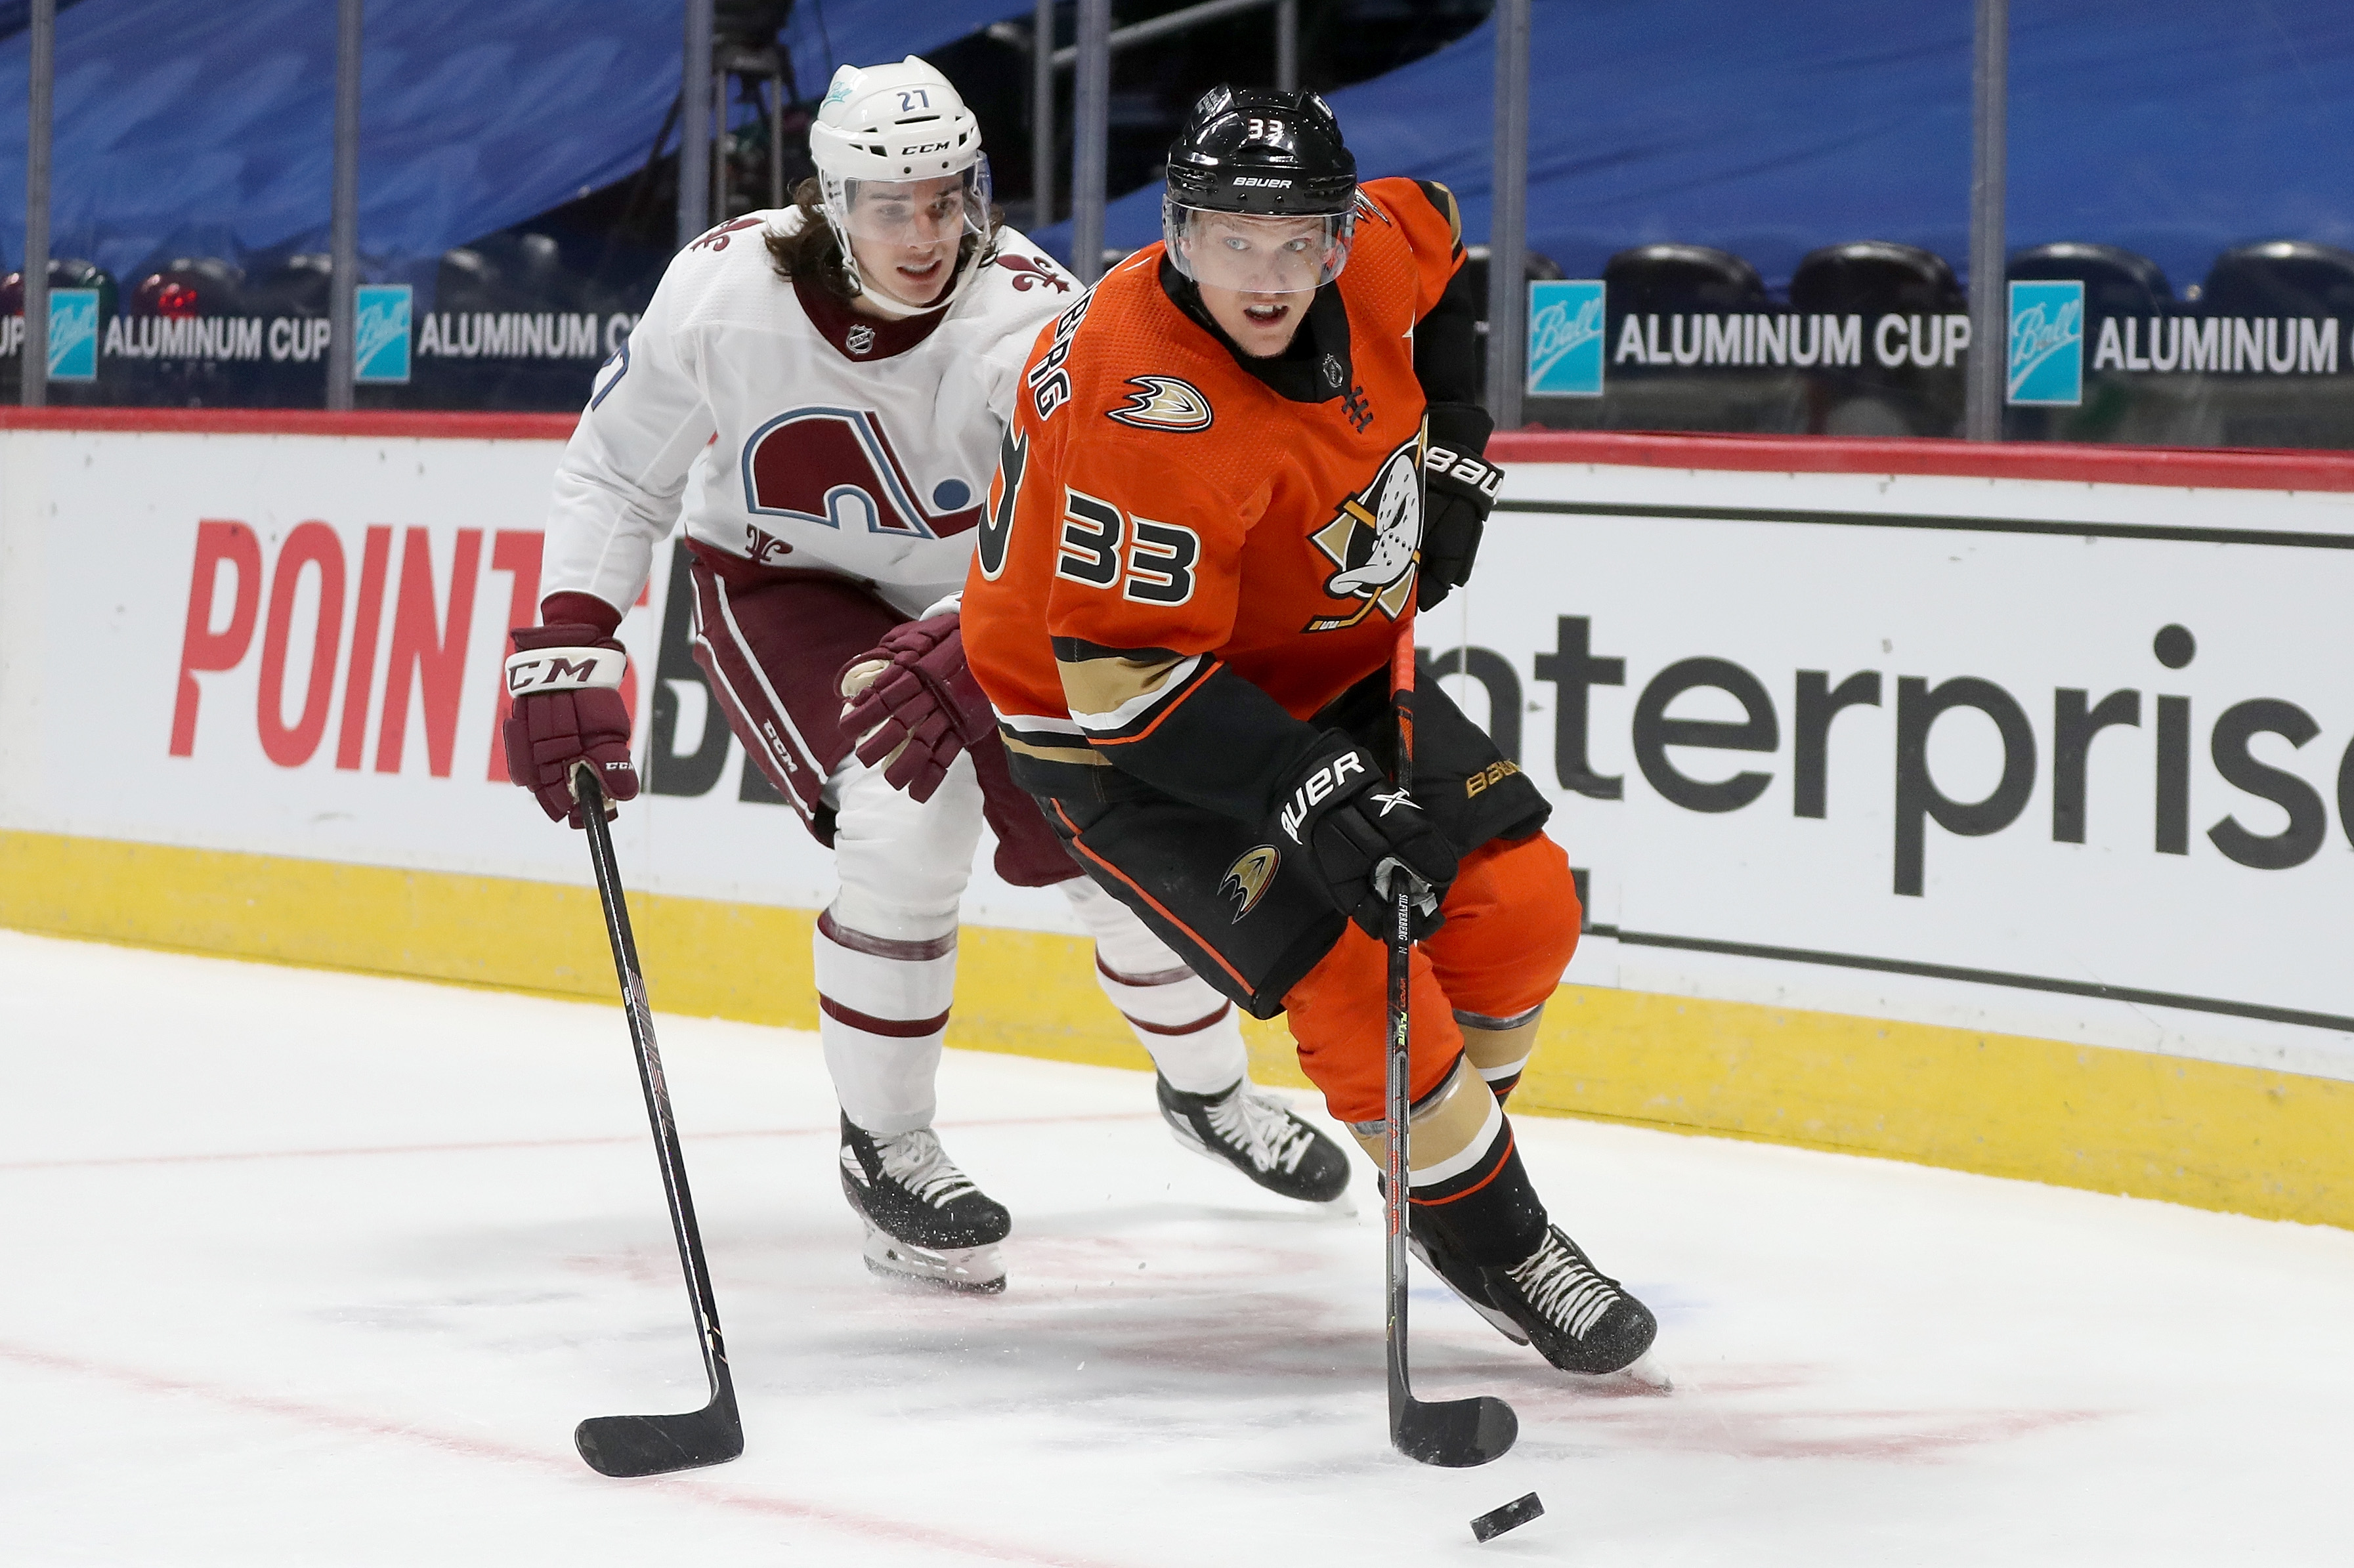 Jakob Silfverberg #33 of the Anaheim Ducks brings the puck off the boards against Ryan Graves #27 of the Colorado Avalanche in the first period at Ball Arena on March 06, 2021 in Denver, Colorado.